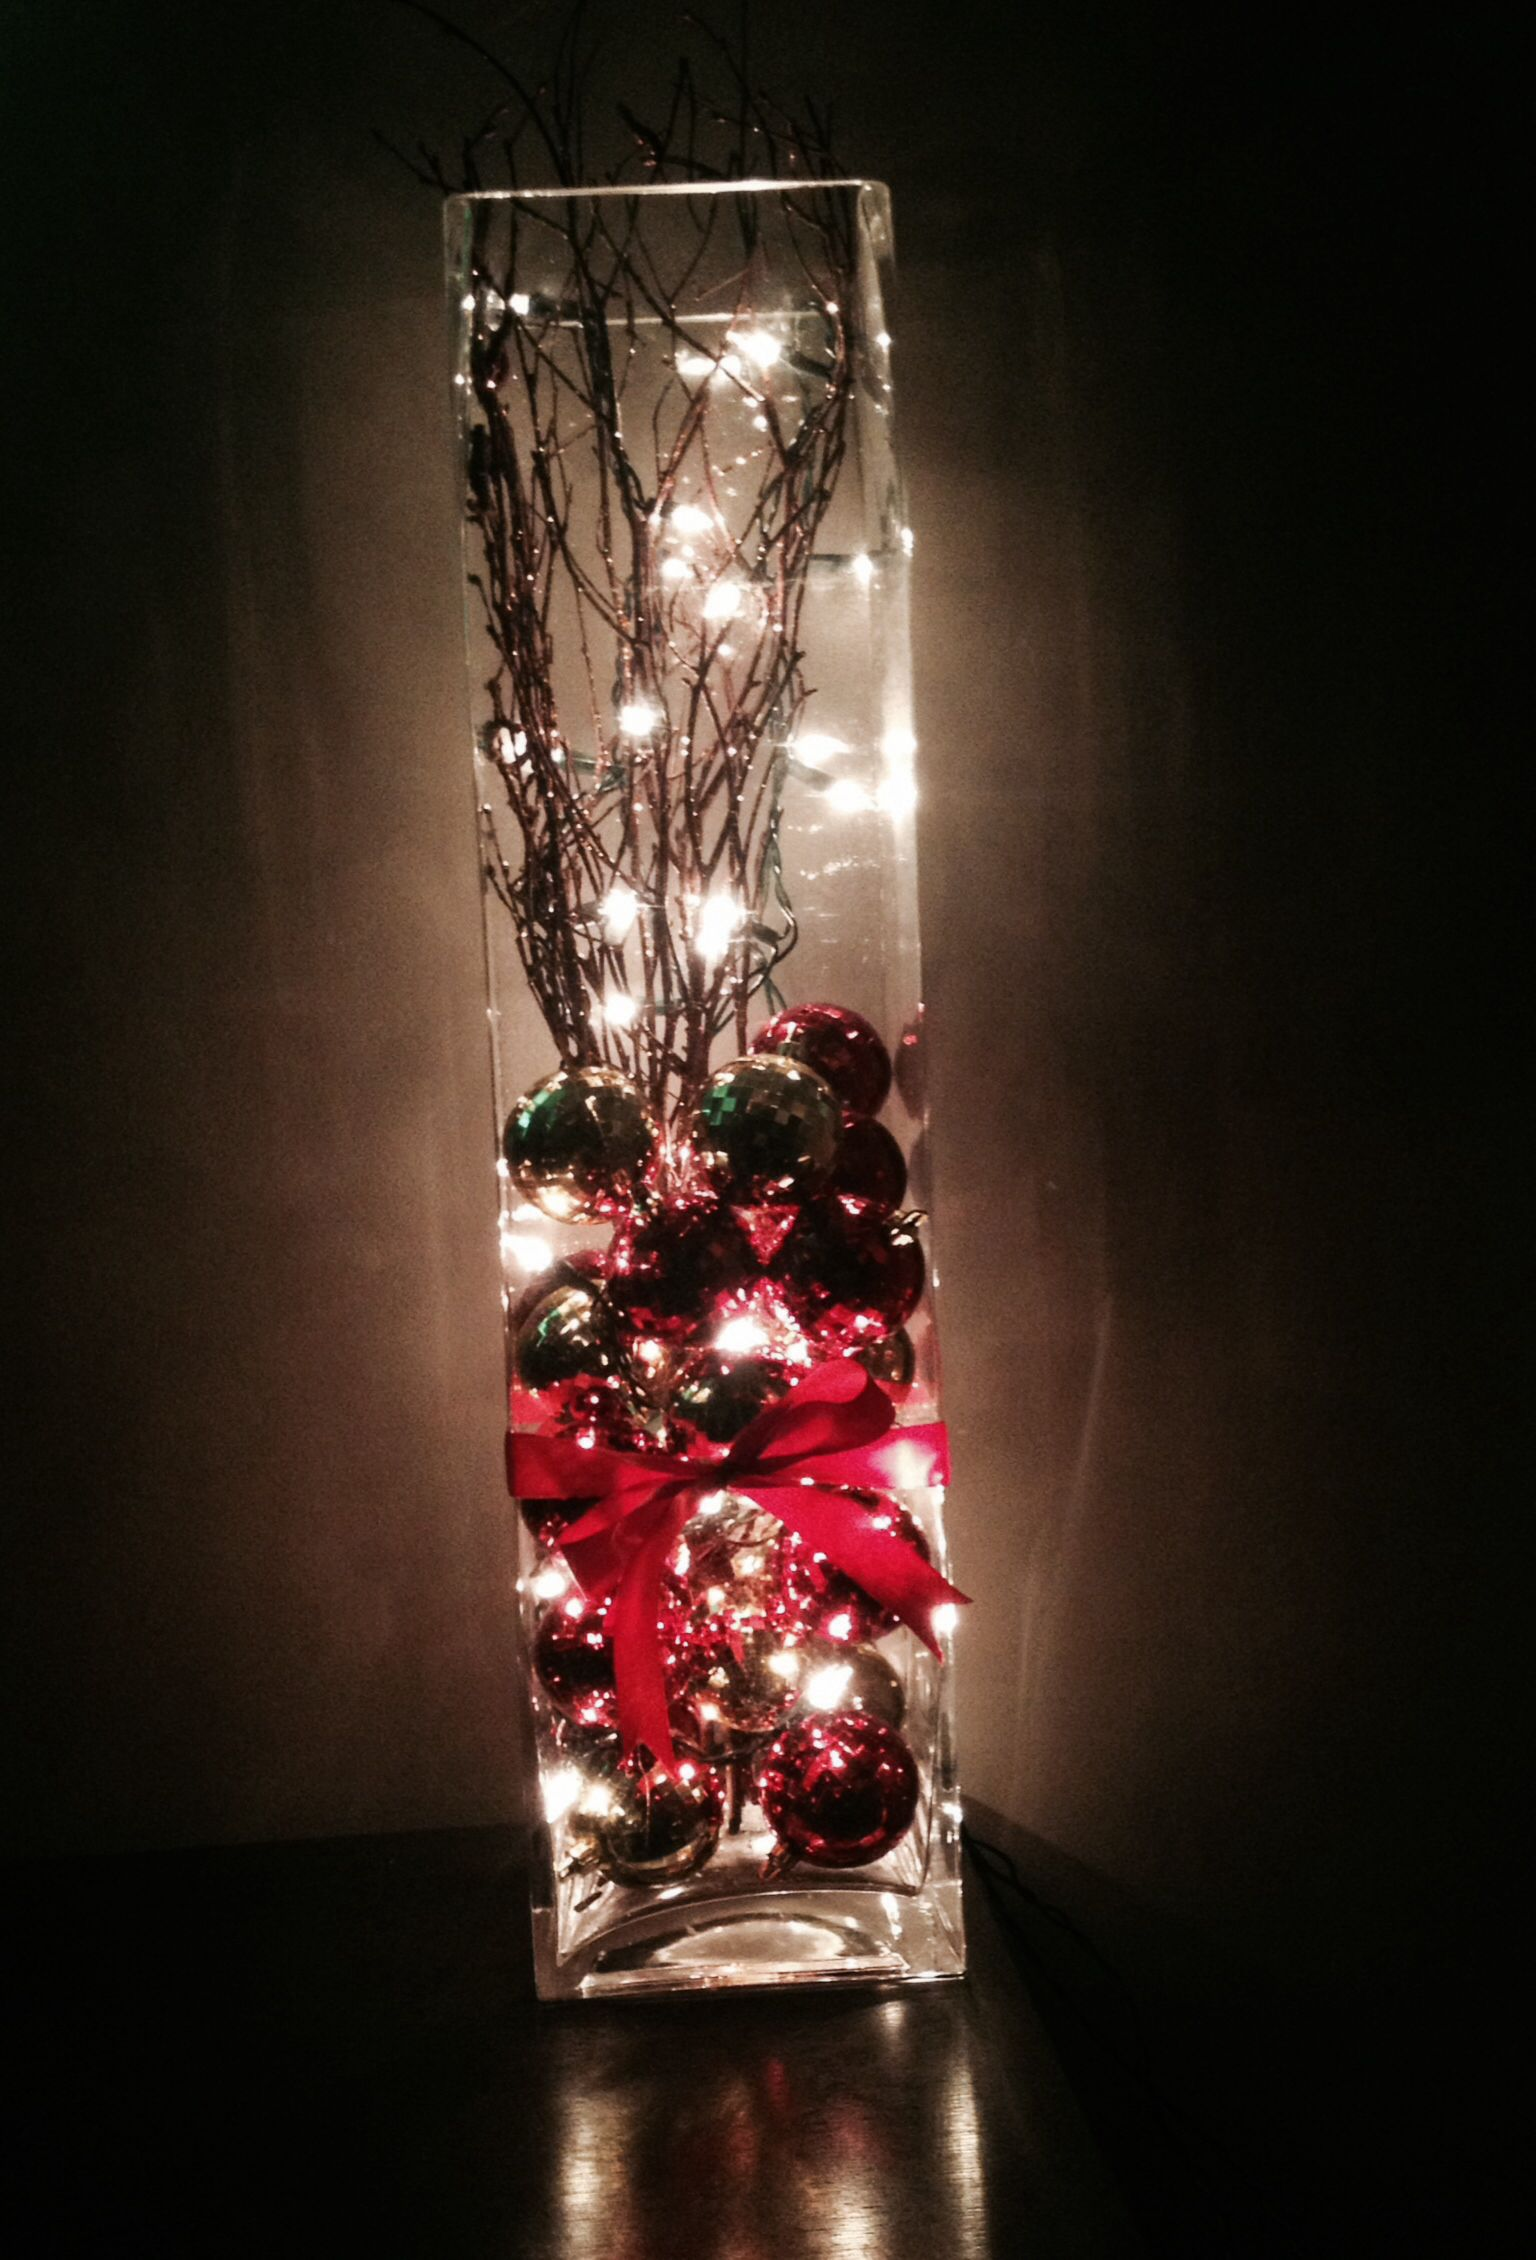 Led Dekoration Homemade Christmas Decor Made With Left Over Lights And